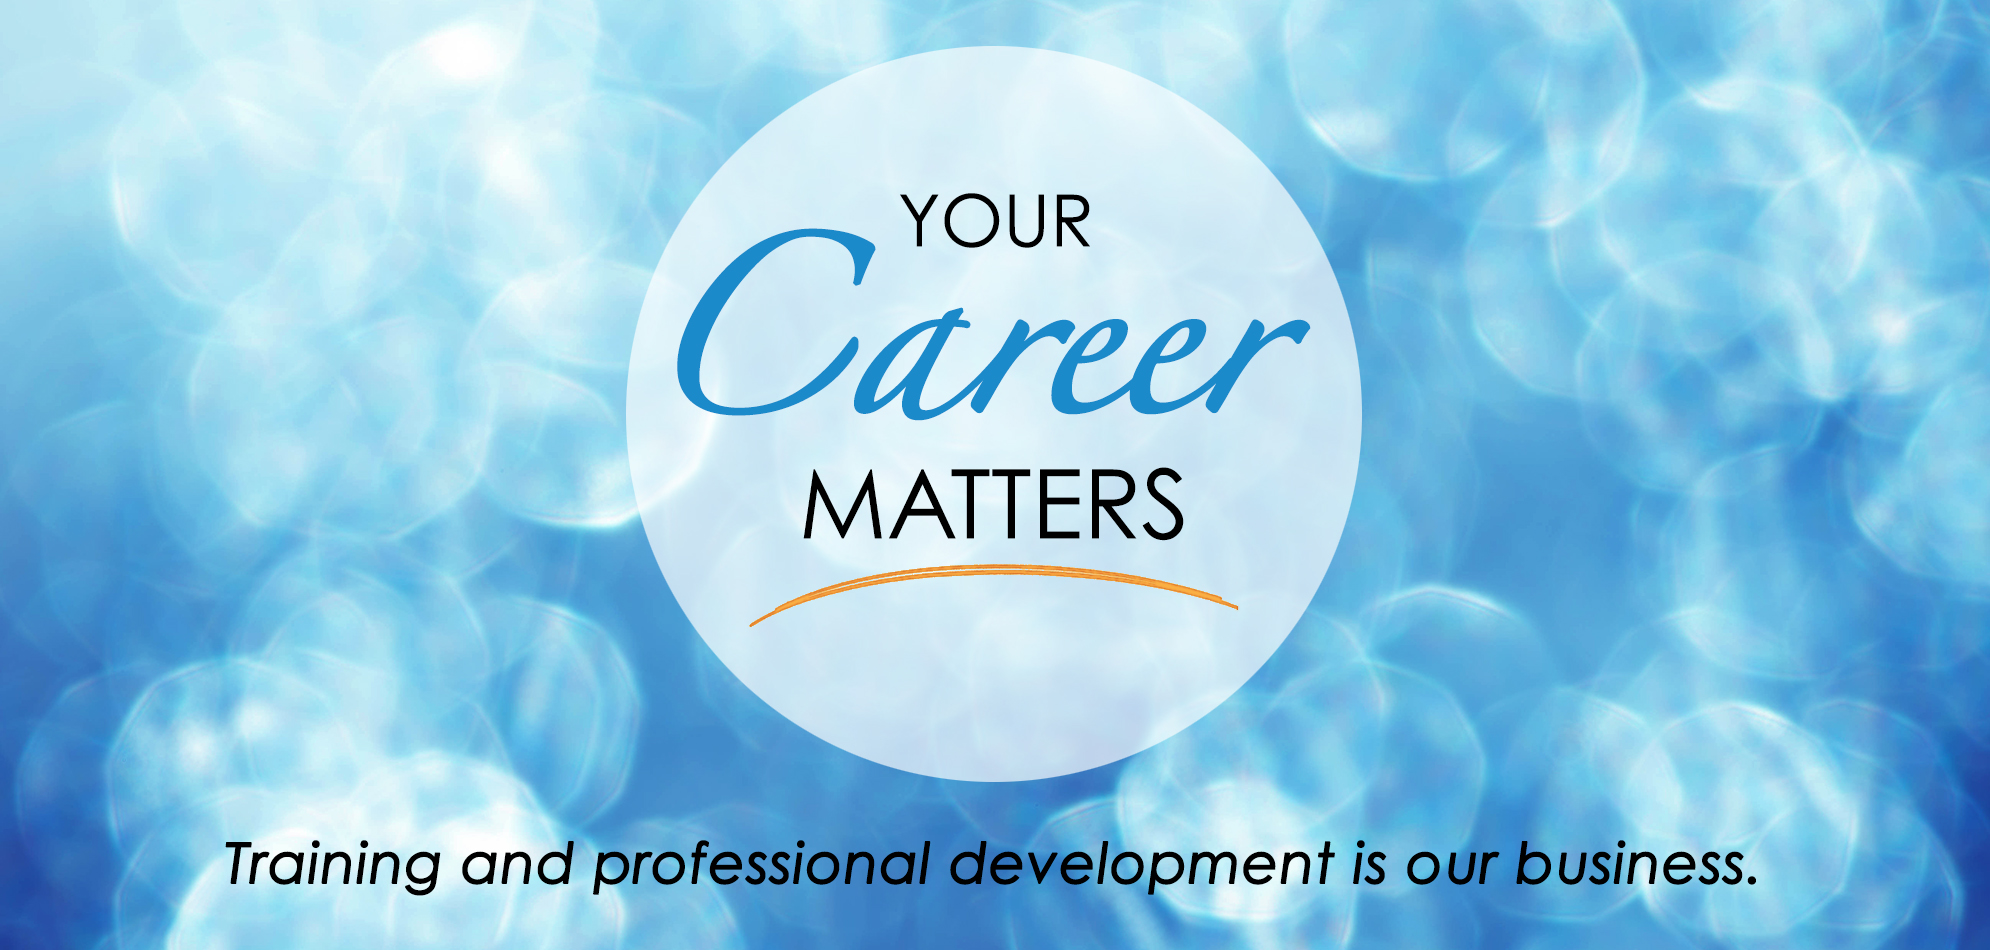 Banner: Your Career Matters